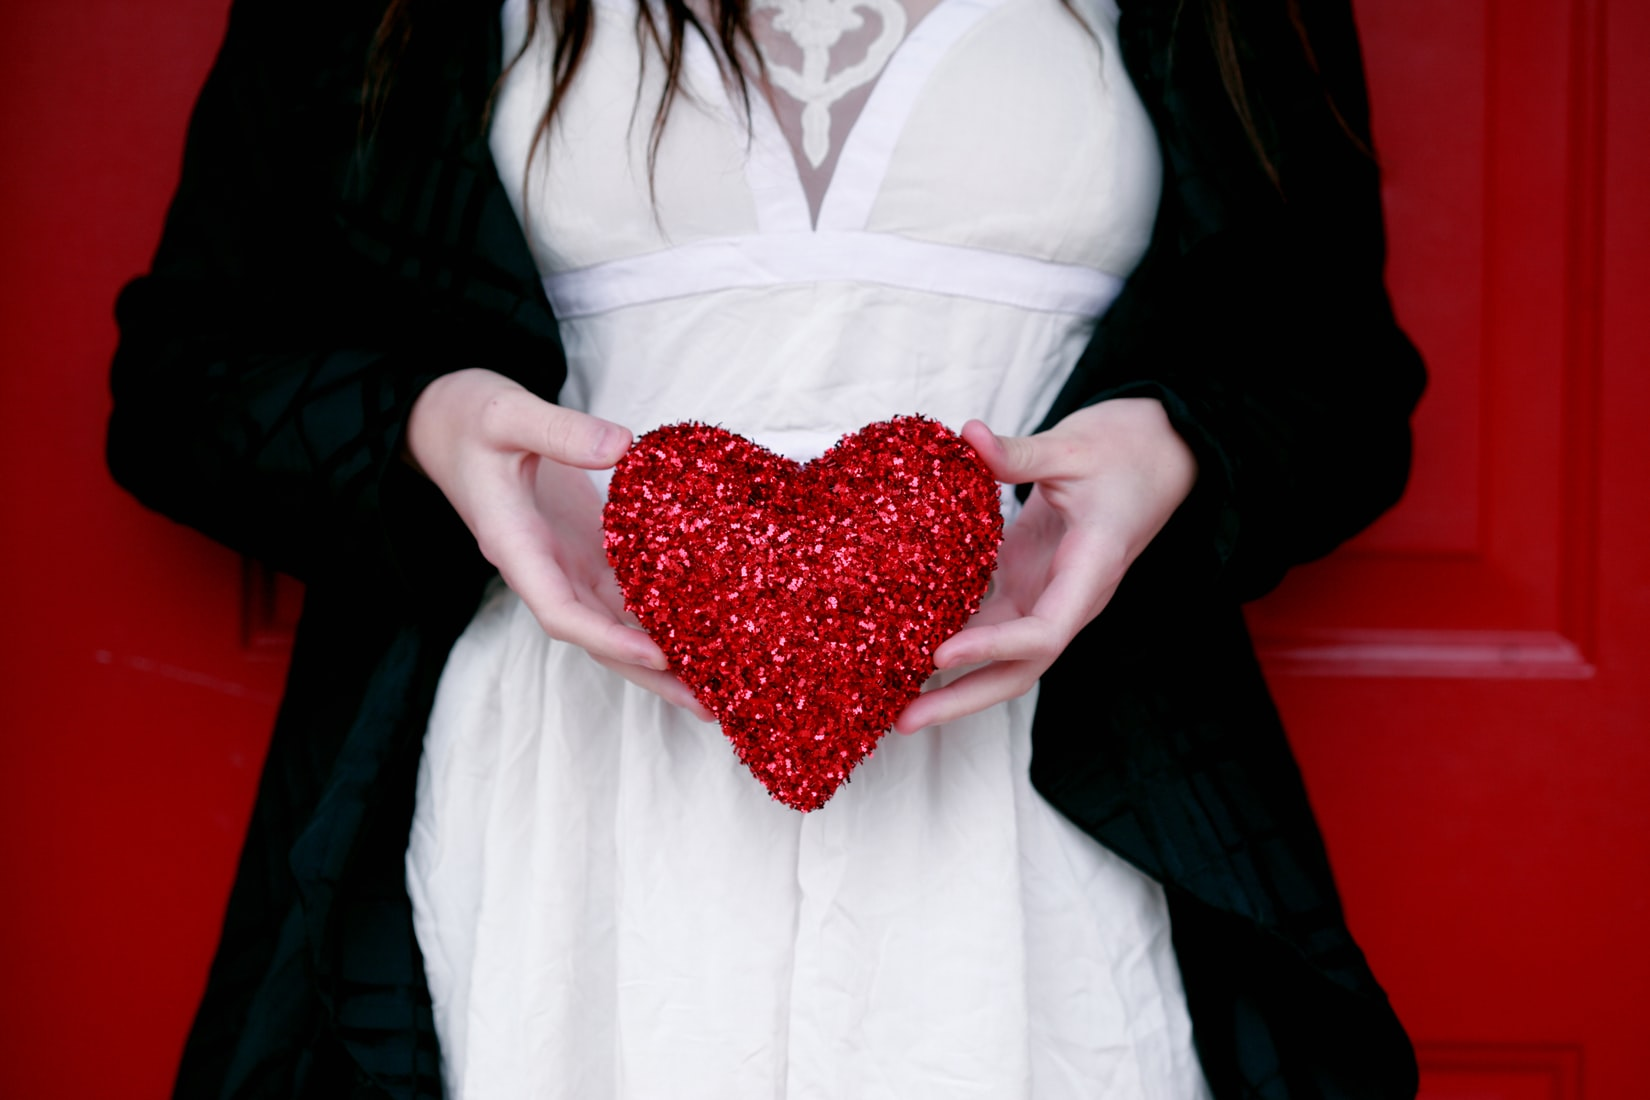 White woman holding red heart pillow in front of red door